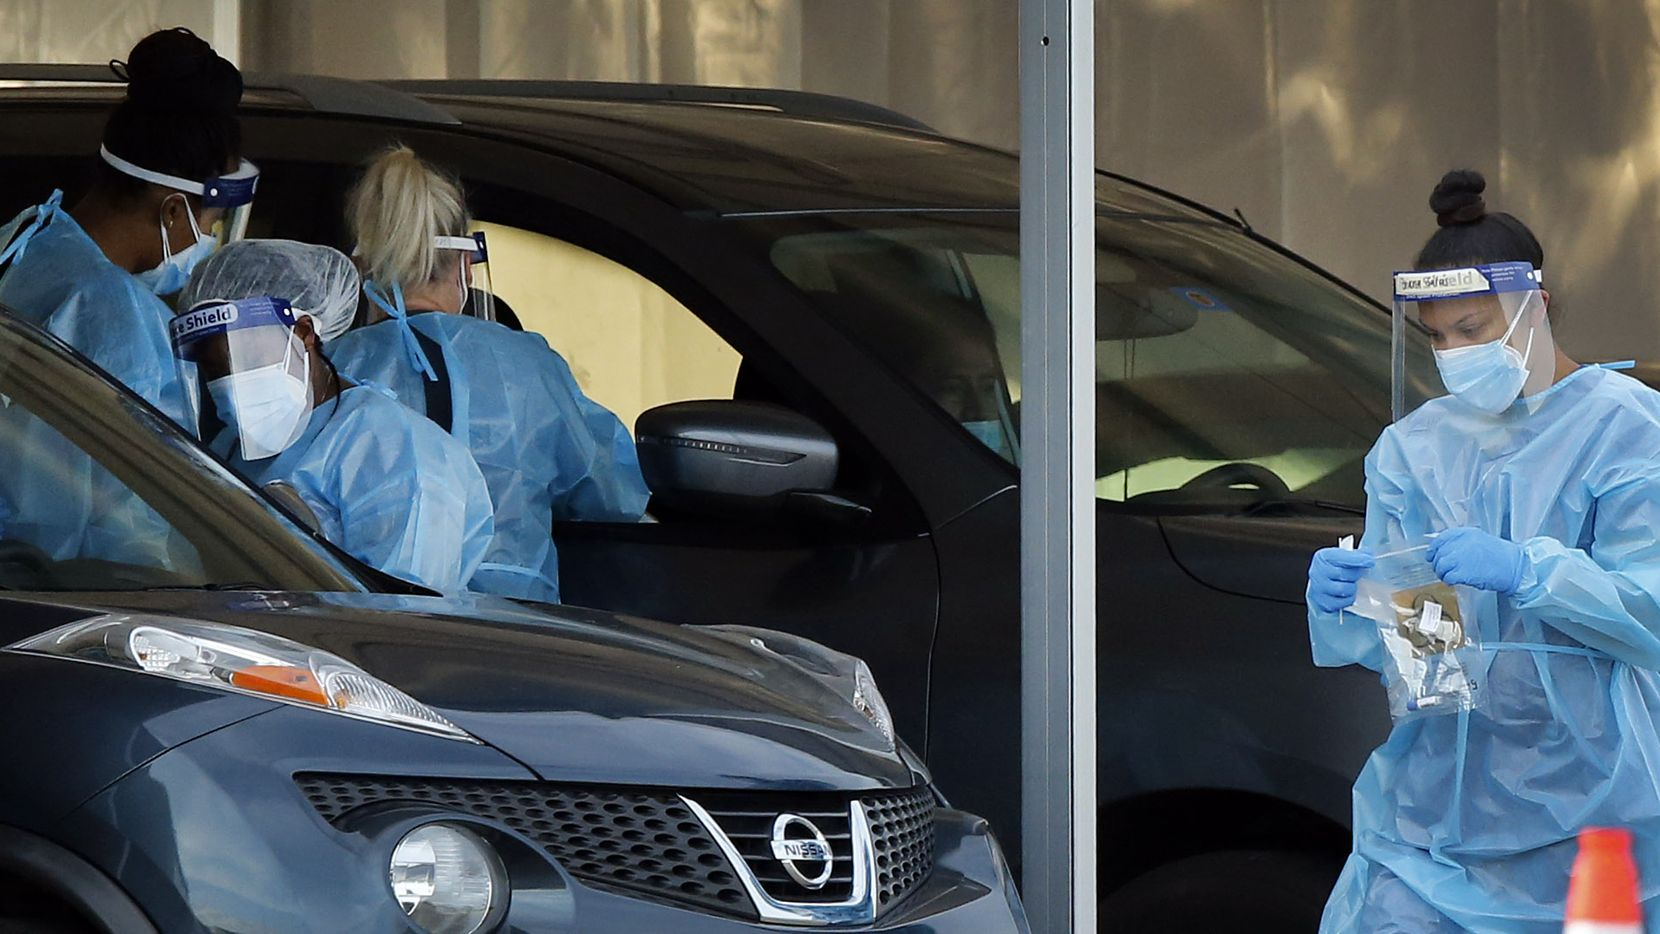 Medical personnel conduct nasal swab tests at a drive-thru COVID-19 testing site on the Dallas College Eastfield Campus in Mesquite, Monday, August 3, 2020. (Tom Fox/The Dallas Morning News)